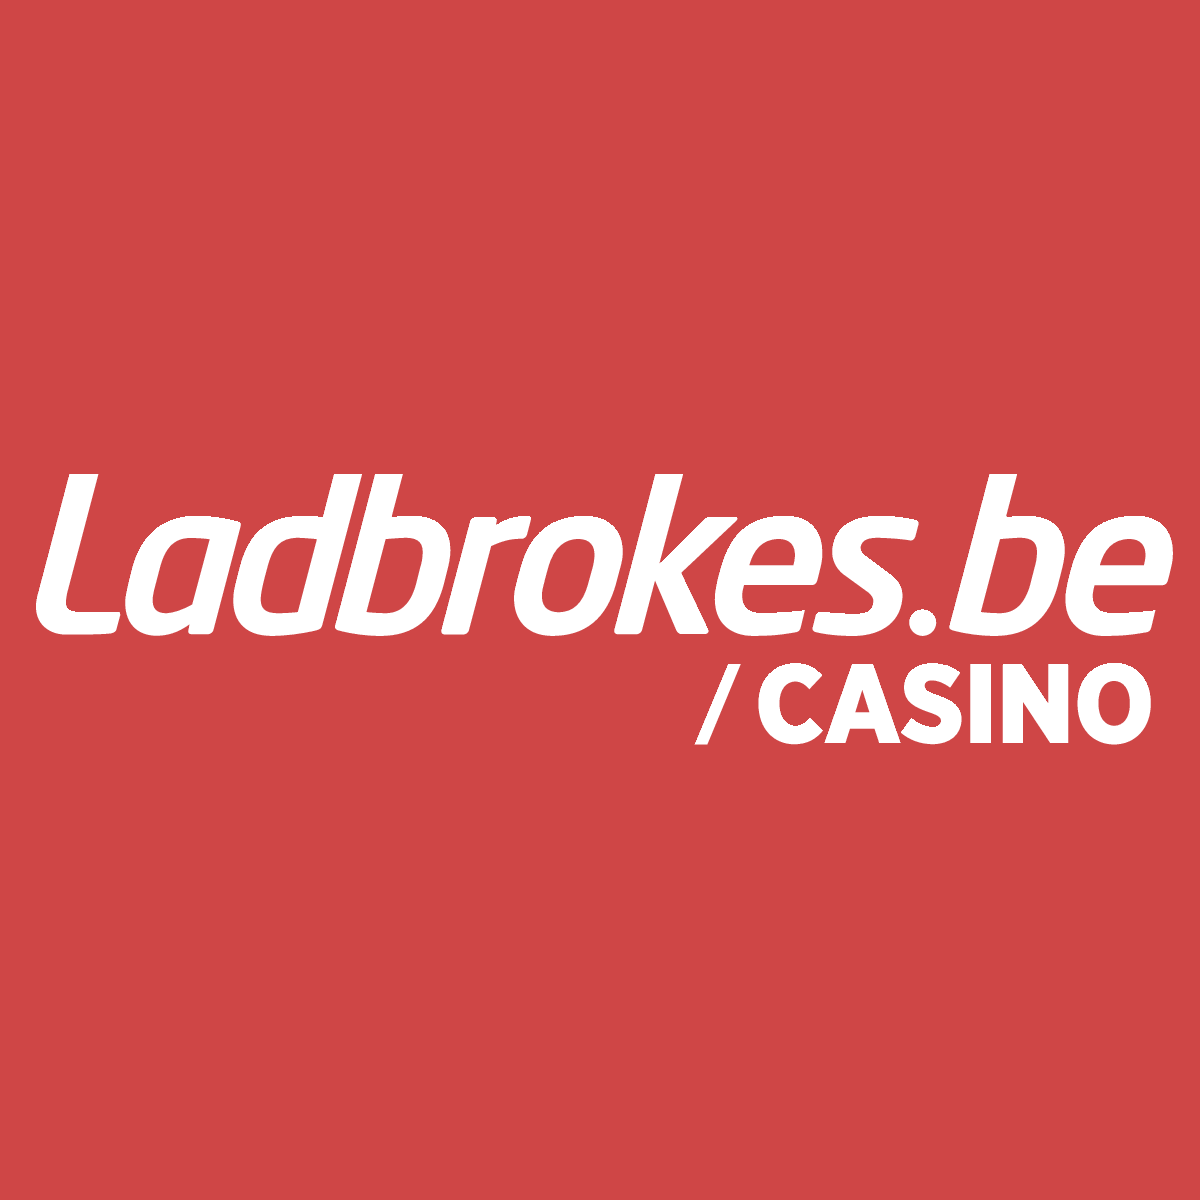 Ladbrokes.be casino logo